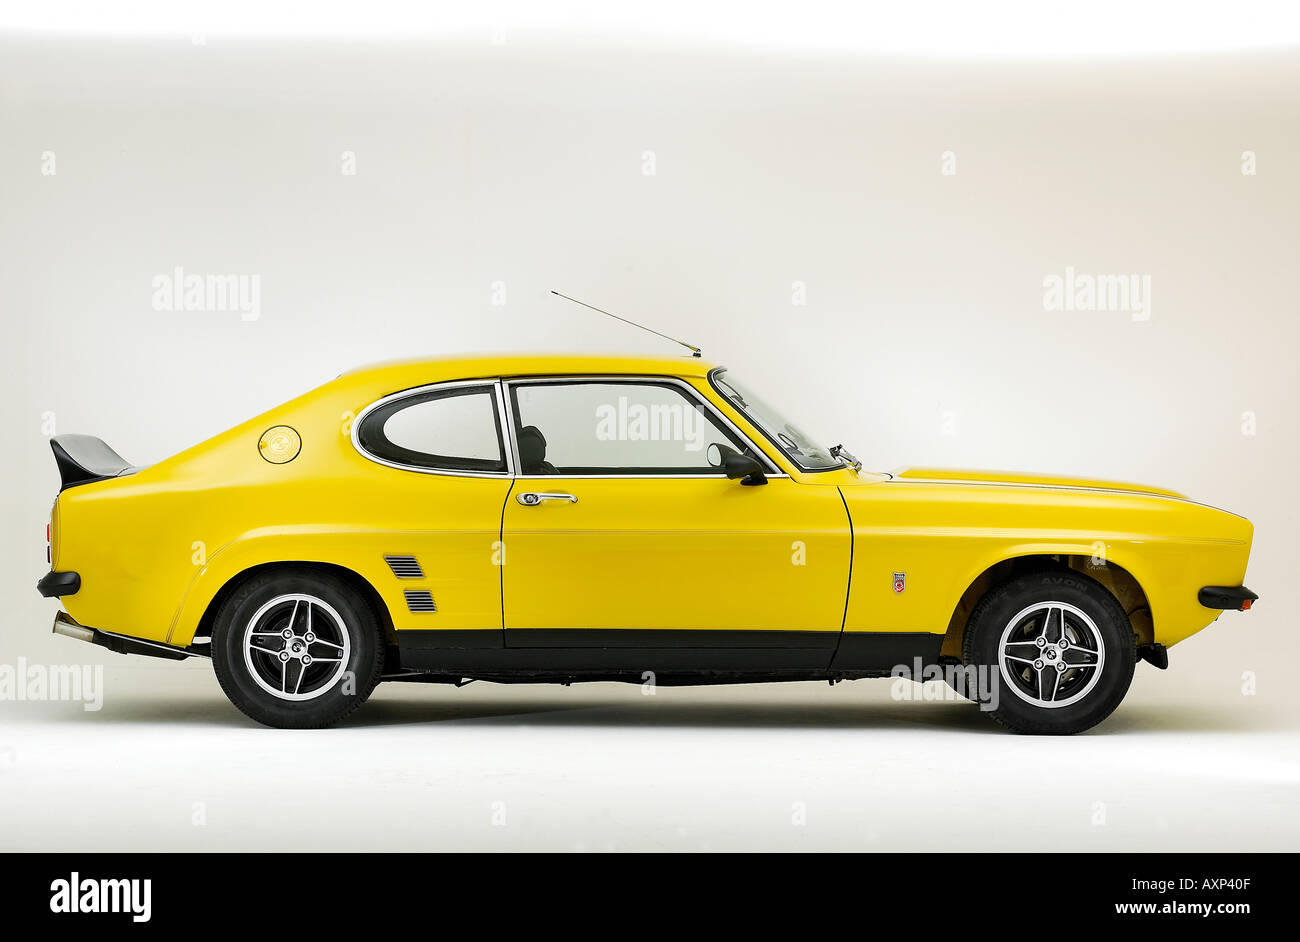 1973 ford capri rs 3100 stock photo royalty free image 3138574 alamy. Black Bedroom Furniture Sets. Home Design Ideas